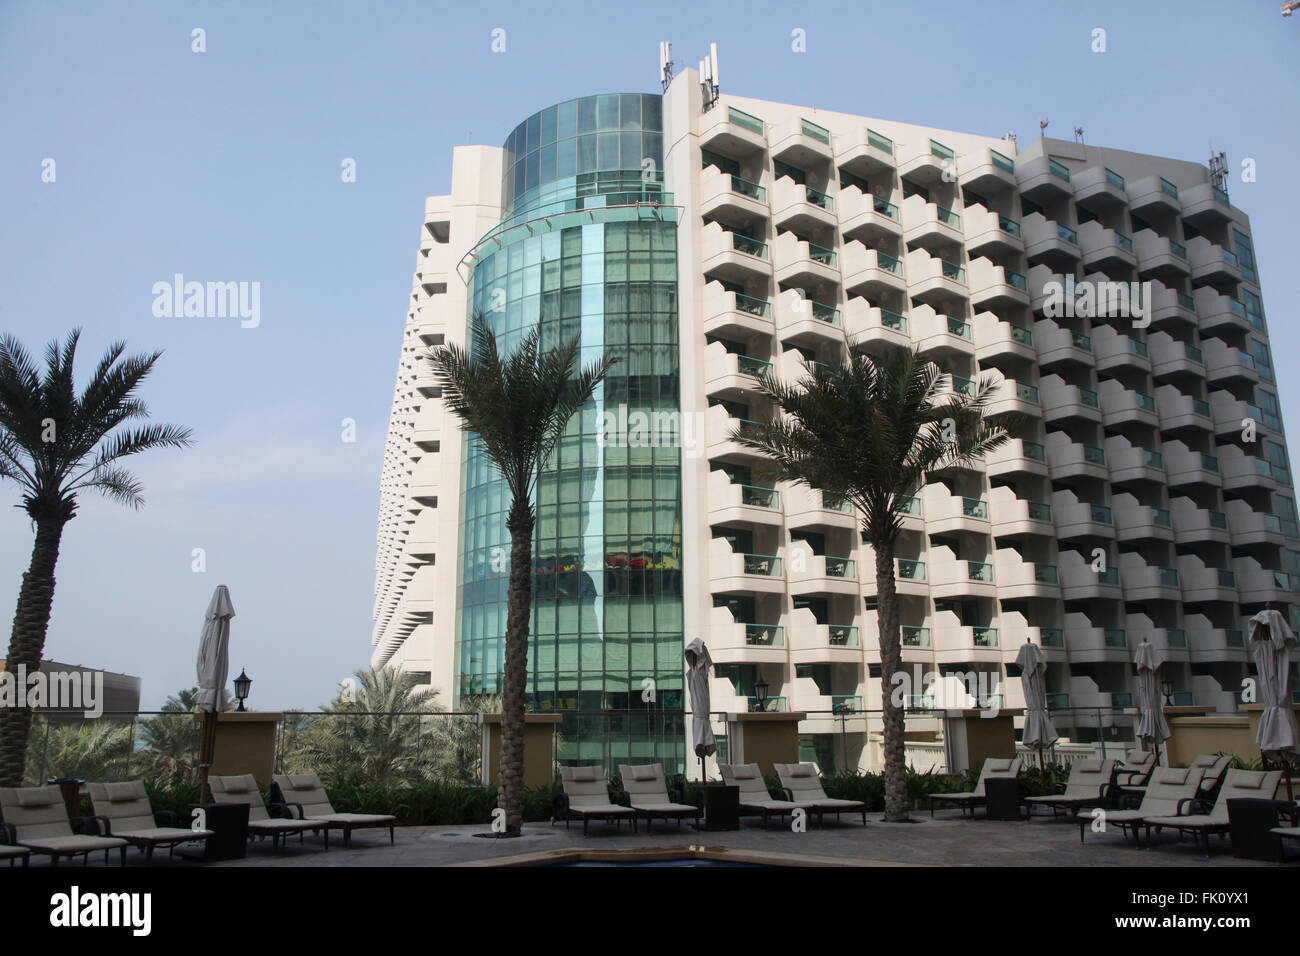 The view of Hilton Jumairah beach hotel on the Gulf shore - Stock Image